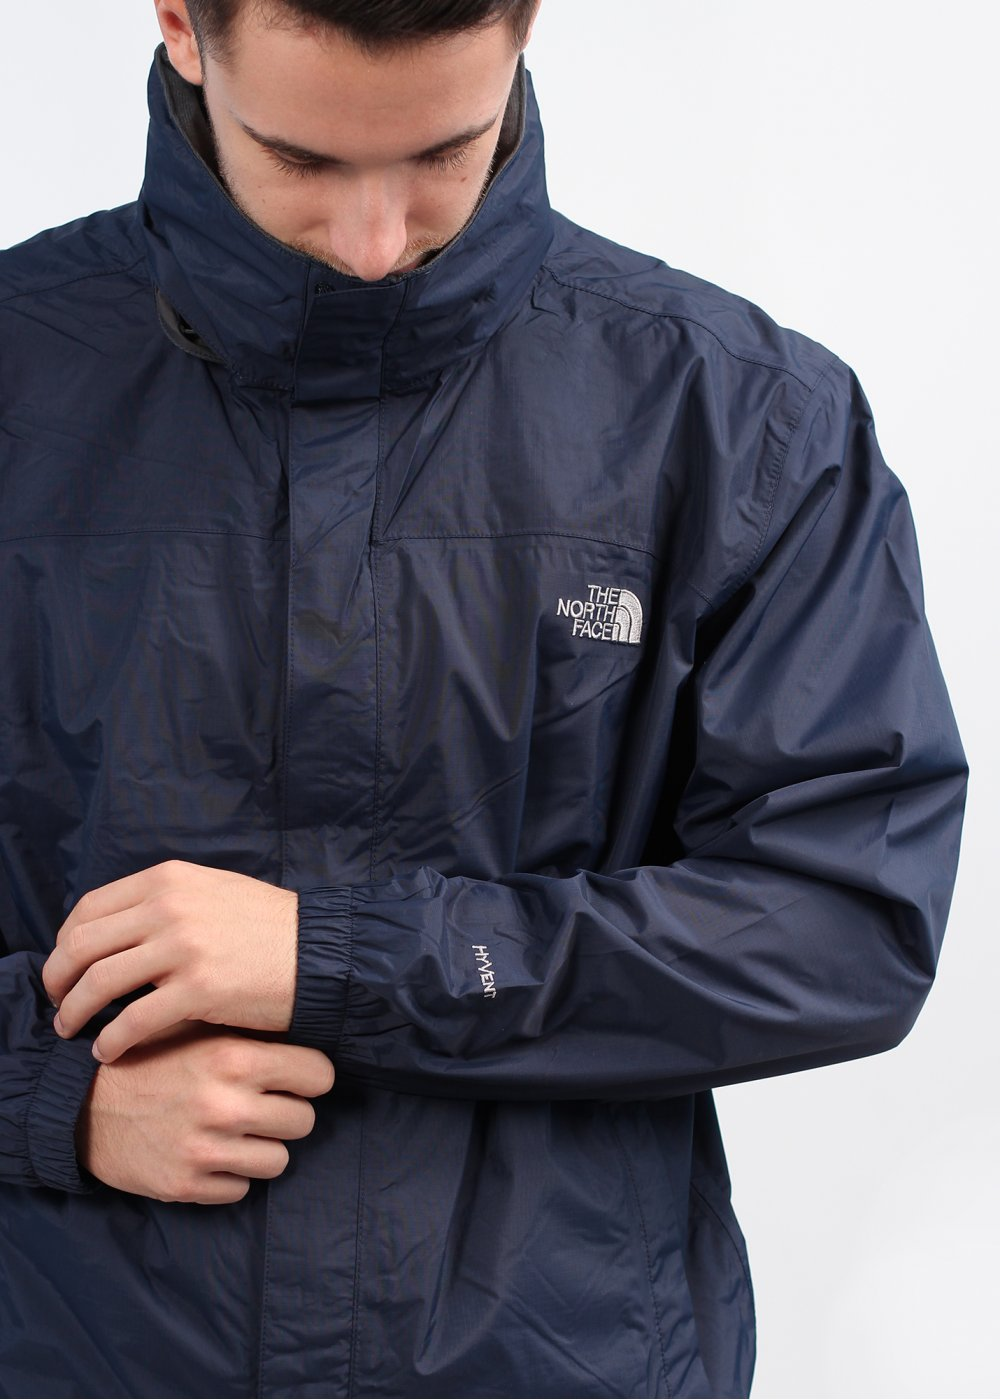 The North Face Resolve Jacket Cosmic Blue